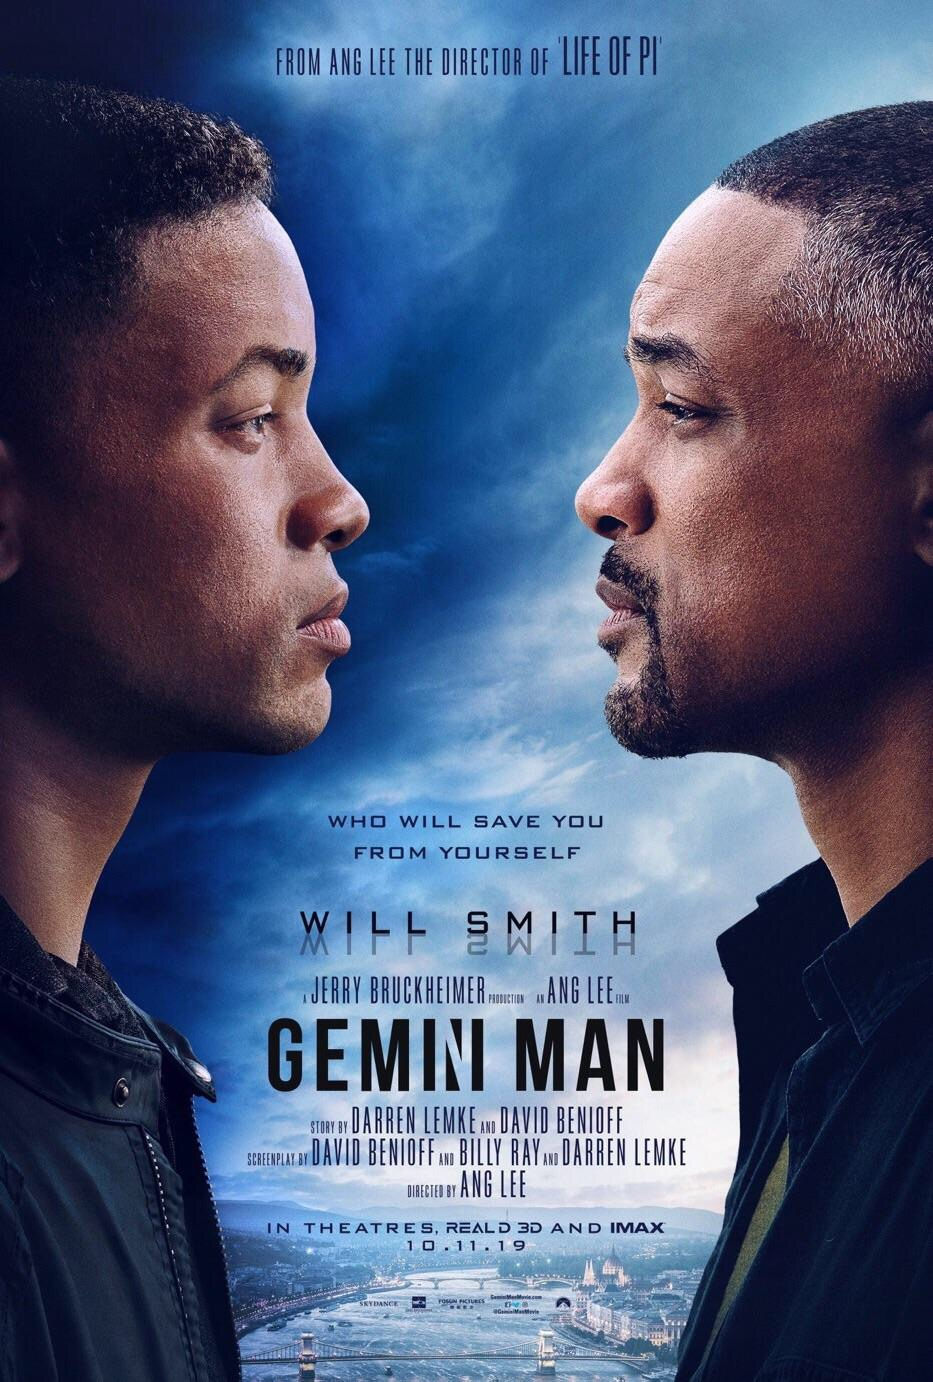 Gemini-man-movie-poster.jpeg